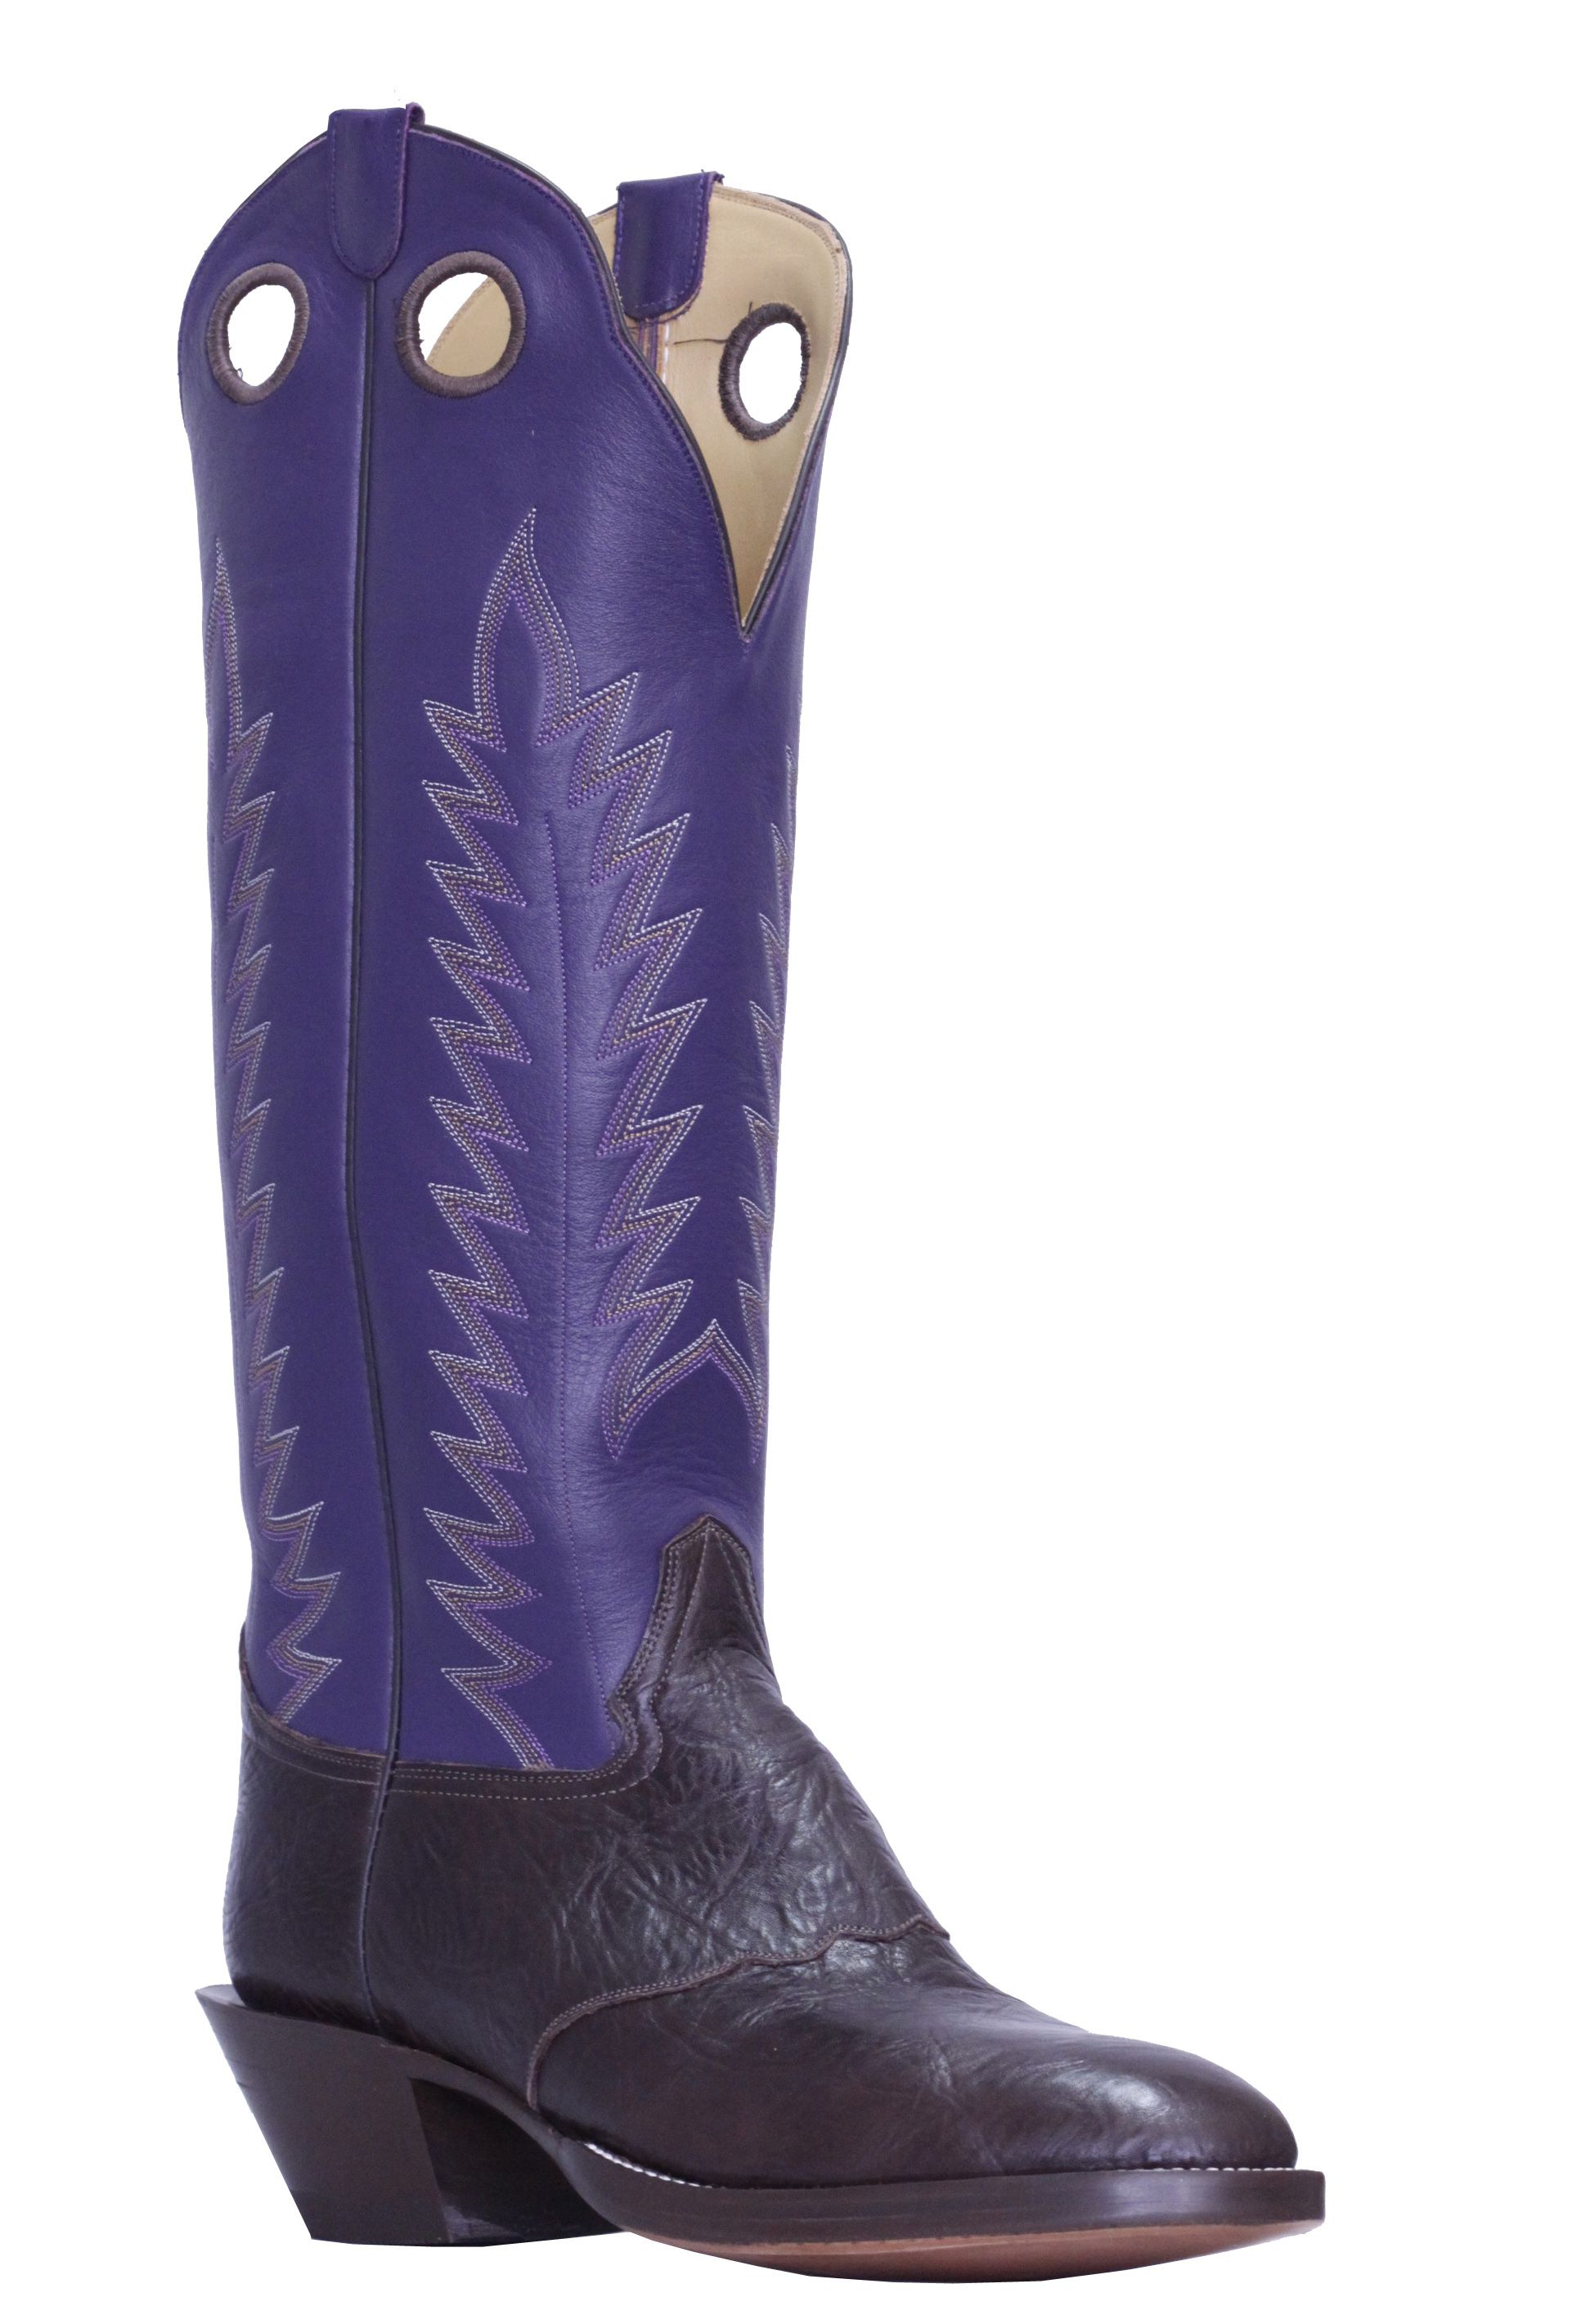 55330871229 Image for HONDO boot; Style# 6014   cow boy boots   Tony lama boots ...